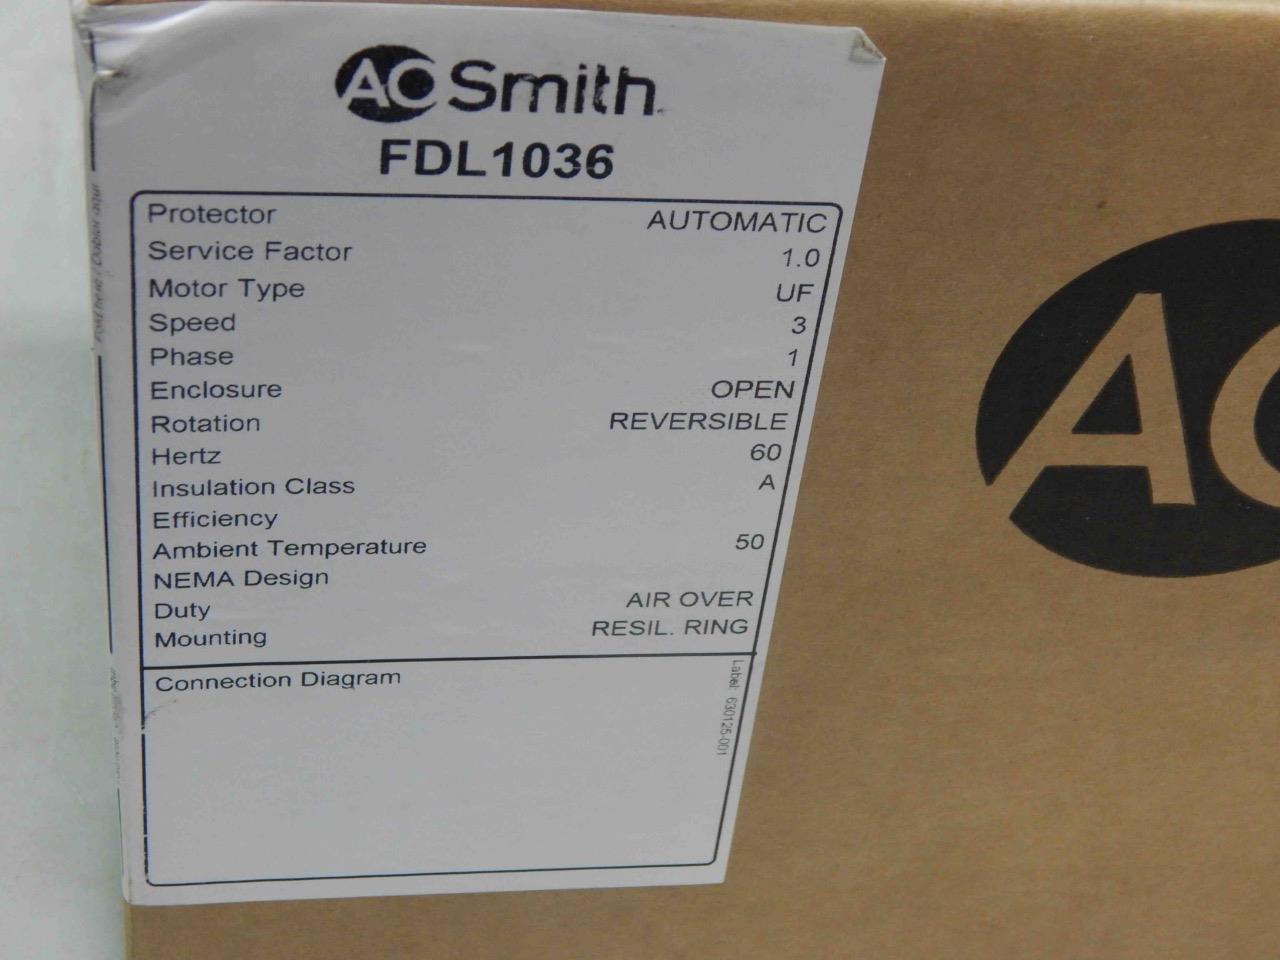 17 AO Smith Motor FDL1036 4MA66 13HP 115V RPM 10753 Spd 48Y Fr NEW 222065080584 3?resize\\\\\\\\\\\\\\\=665%2C499 ebm papst fan wiring diagram 115v gandul 45 77 79 119  at aneh.co